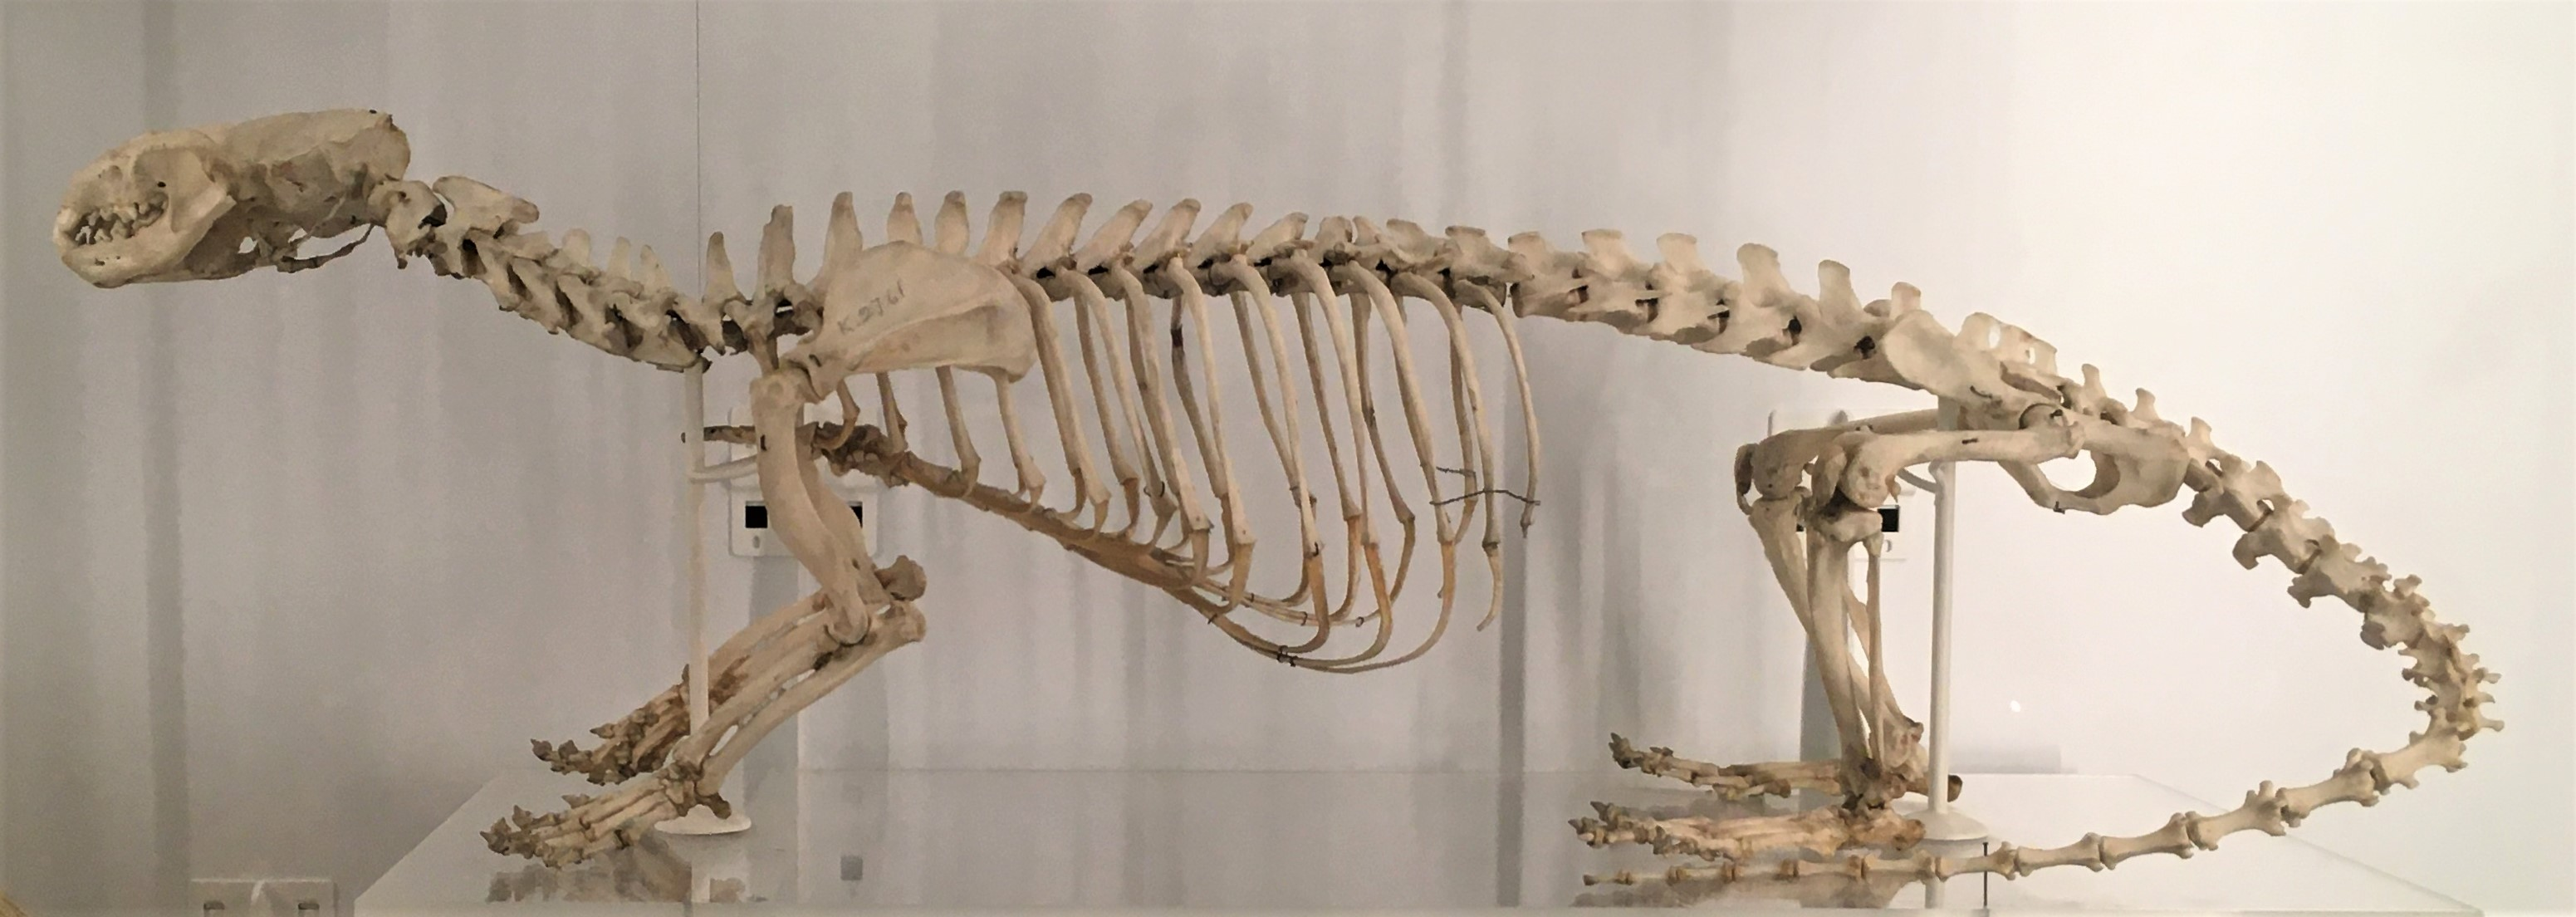 Photograph of an otter skeleton